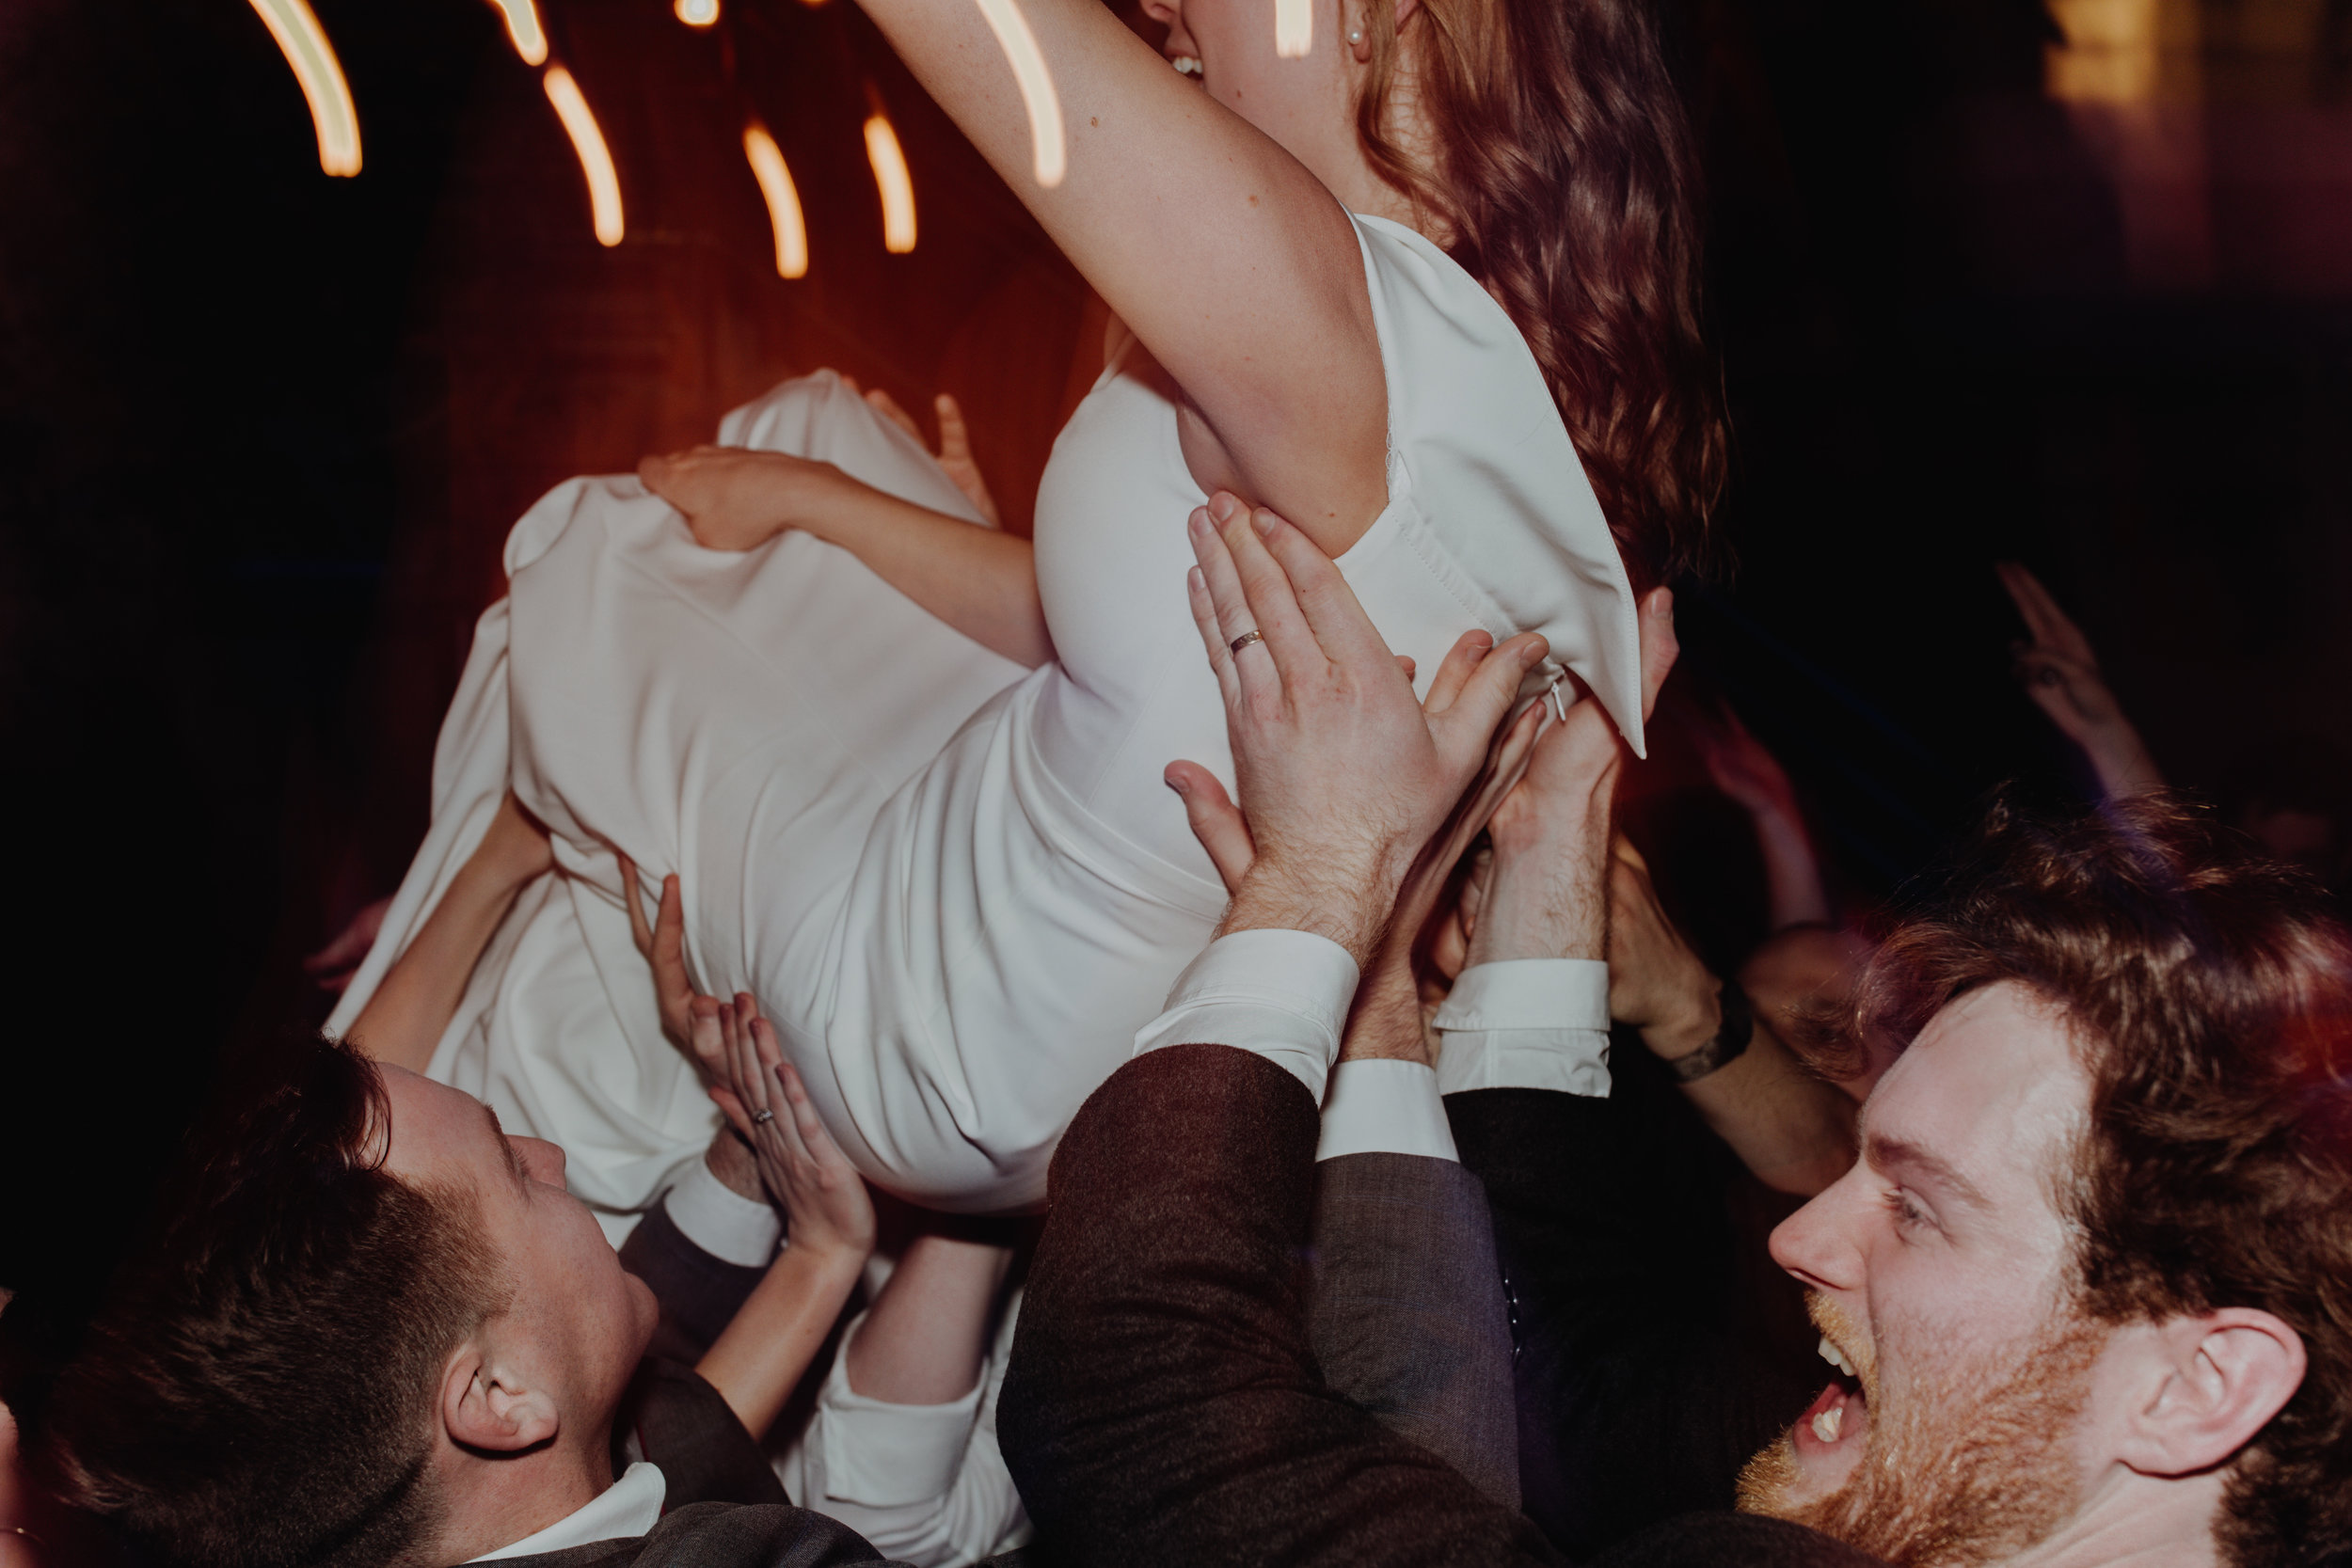 fremont_foundry_seattle_wedding_oliviastrohm___-25.jpg